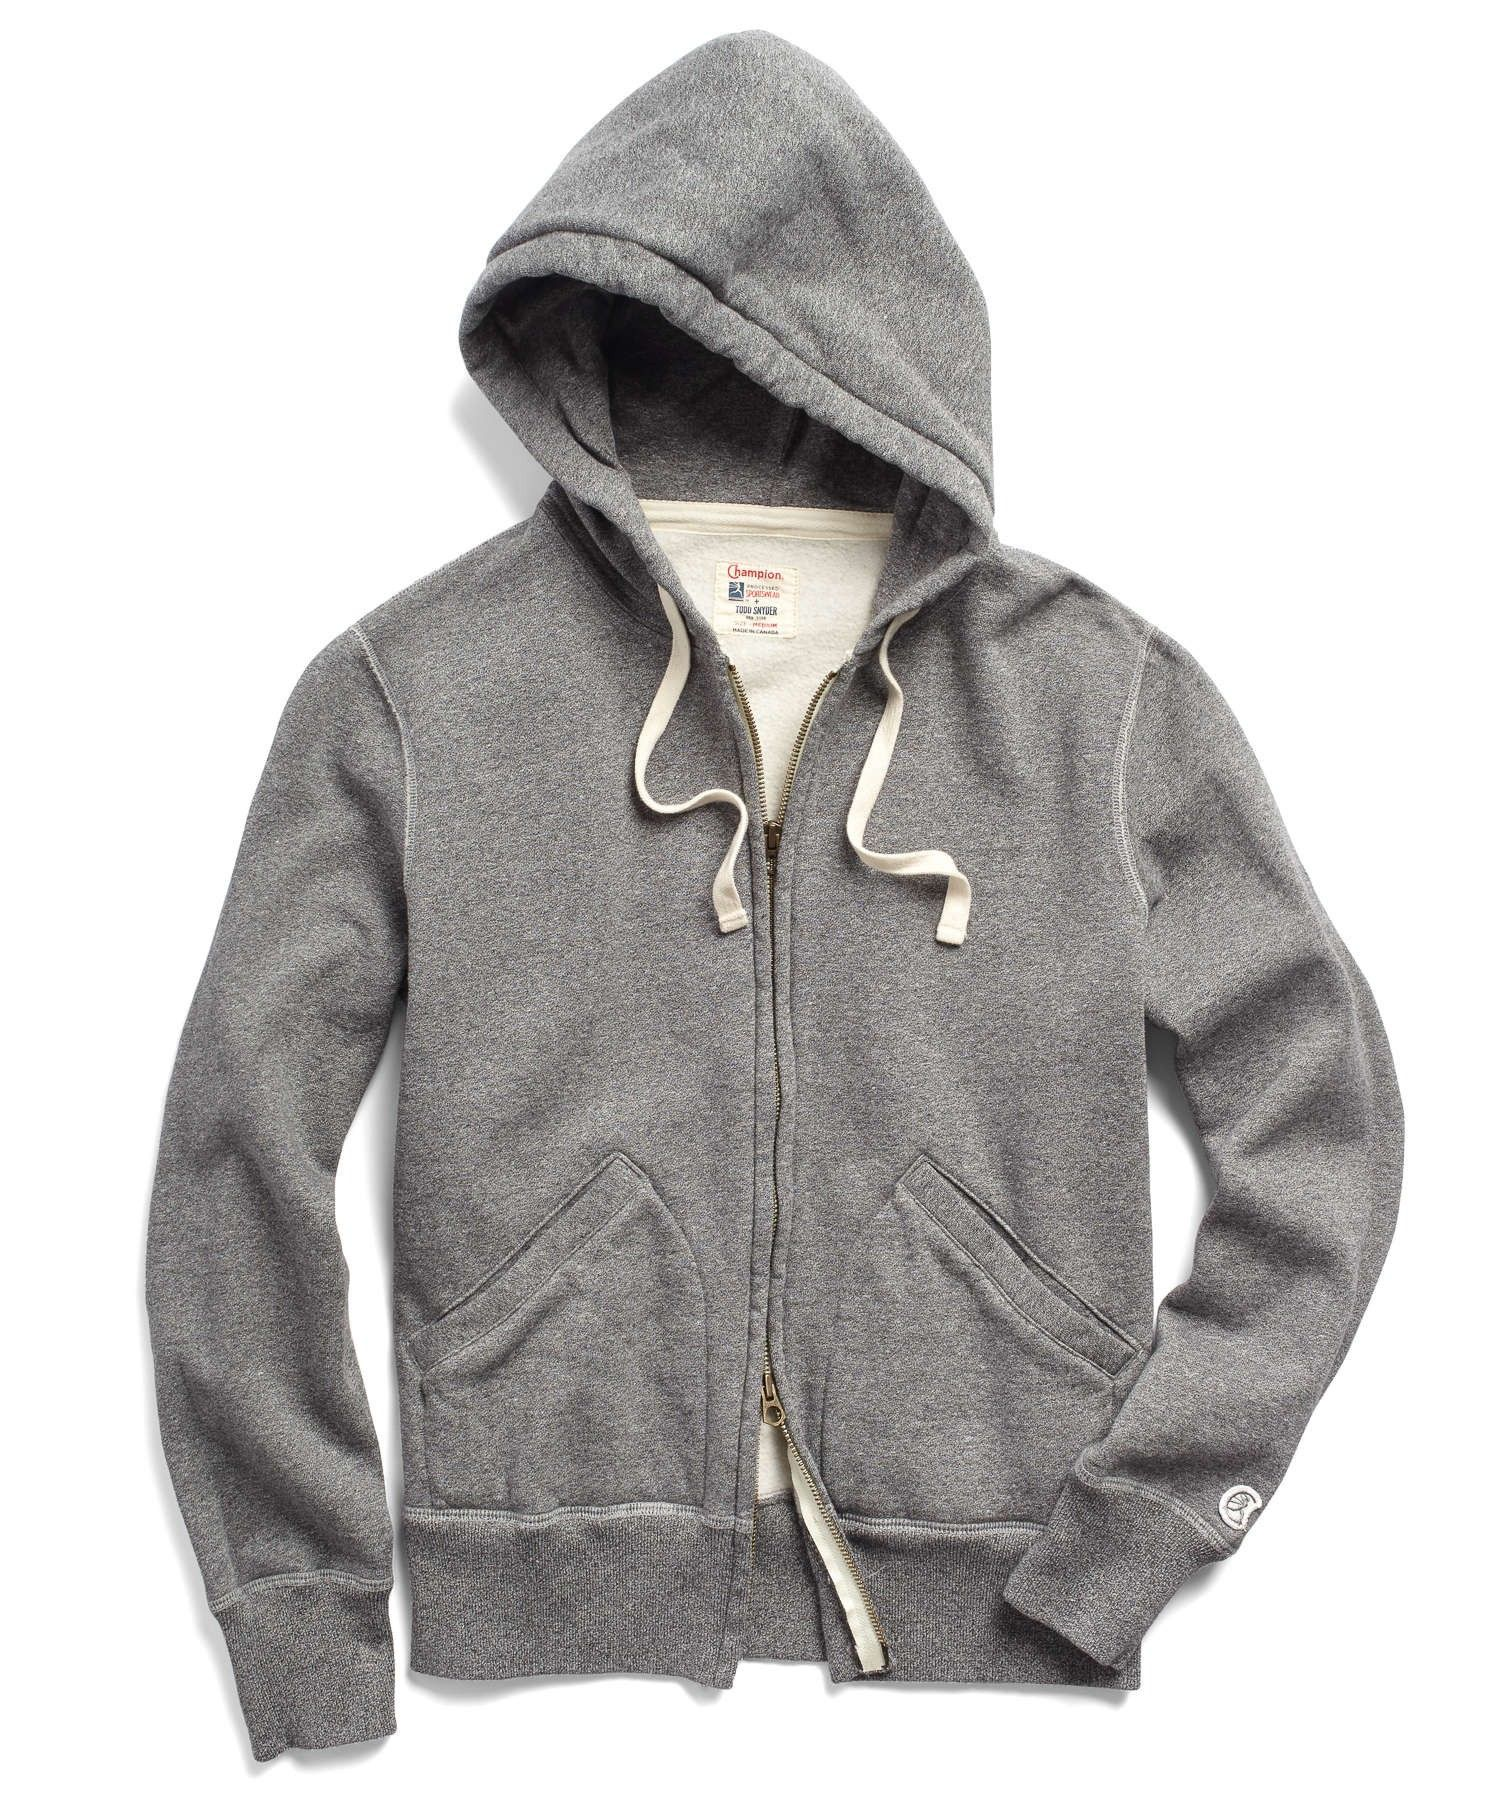 aba02ee5d31c TODD SNYDER Classic Fullzip Hoodie in Salt and Pepper.  toddsnyder  cloth